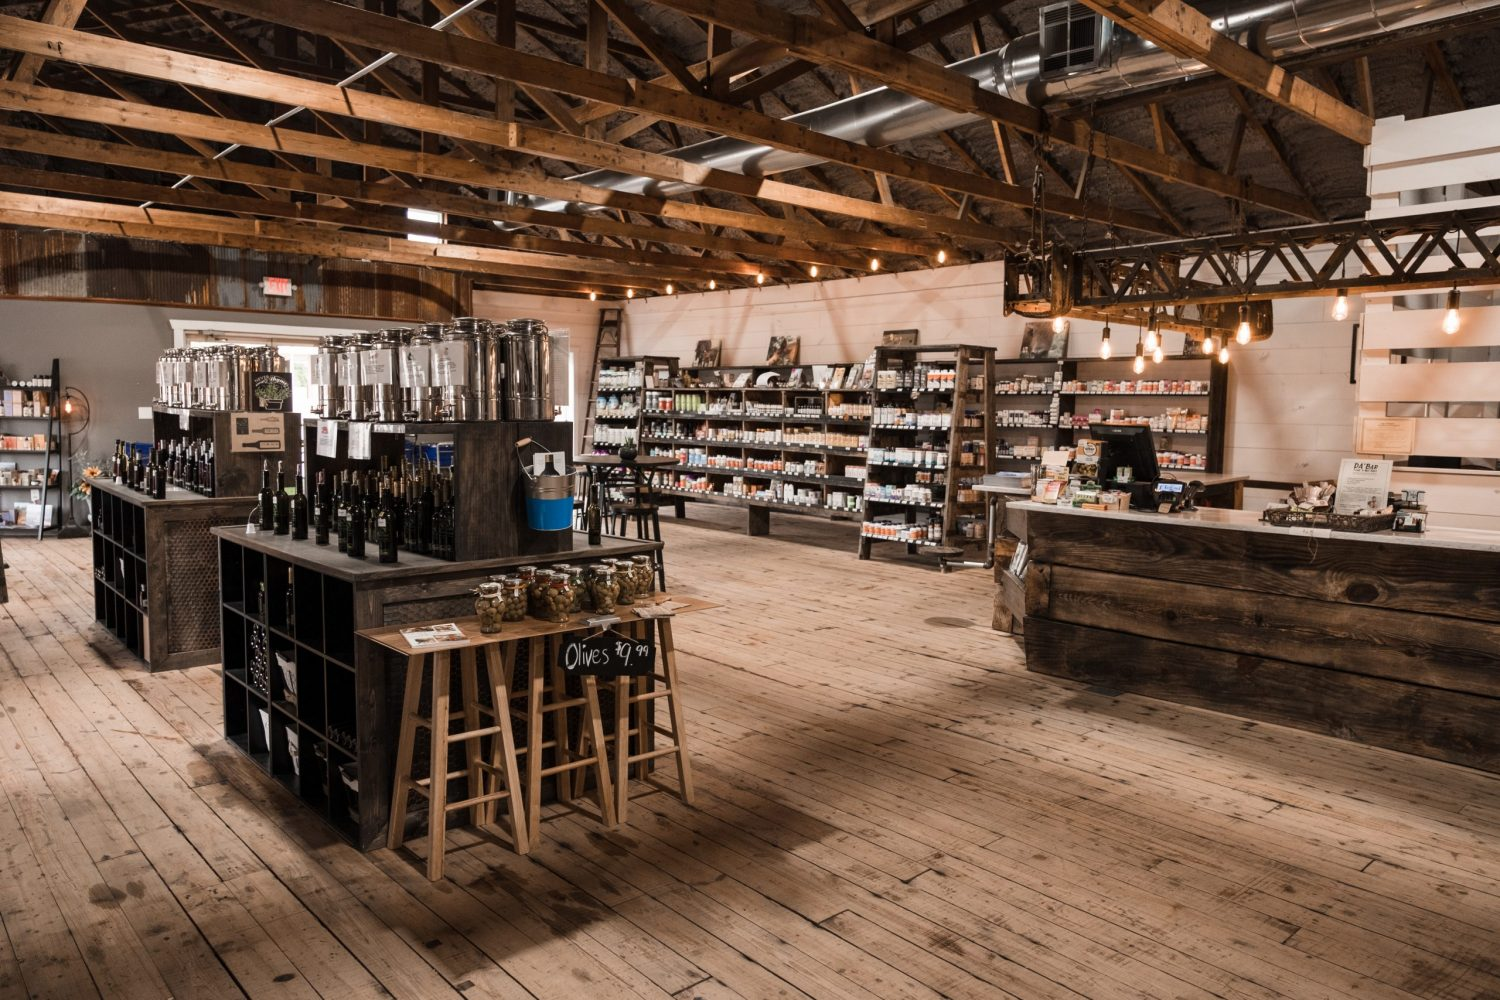 The Natural Food Store